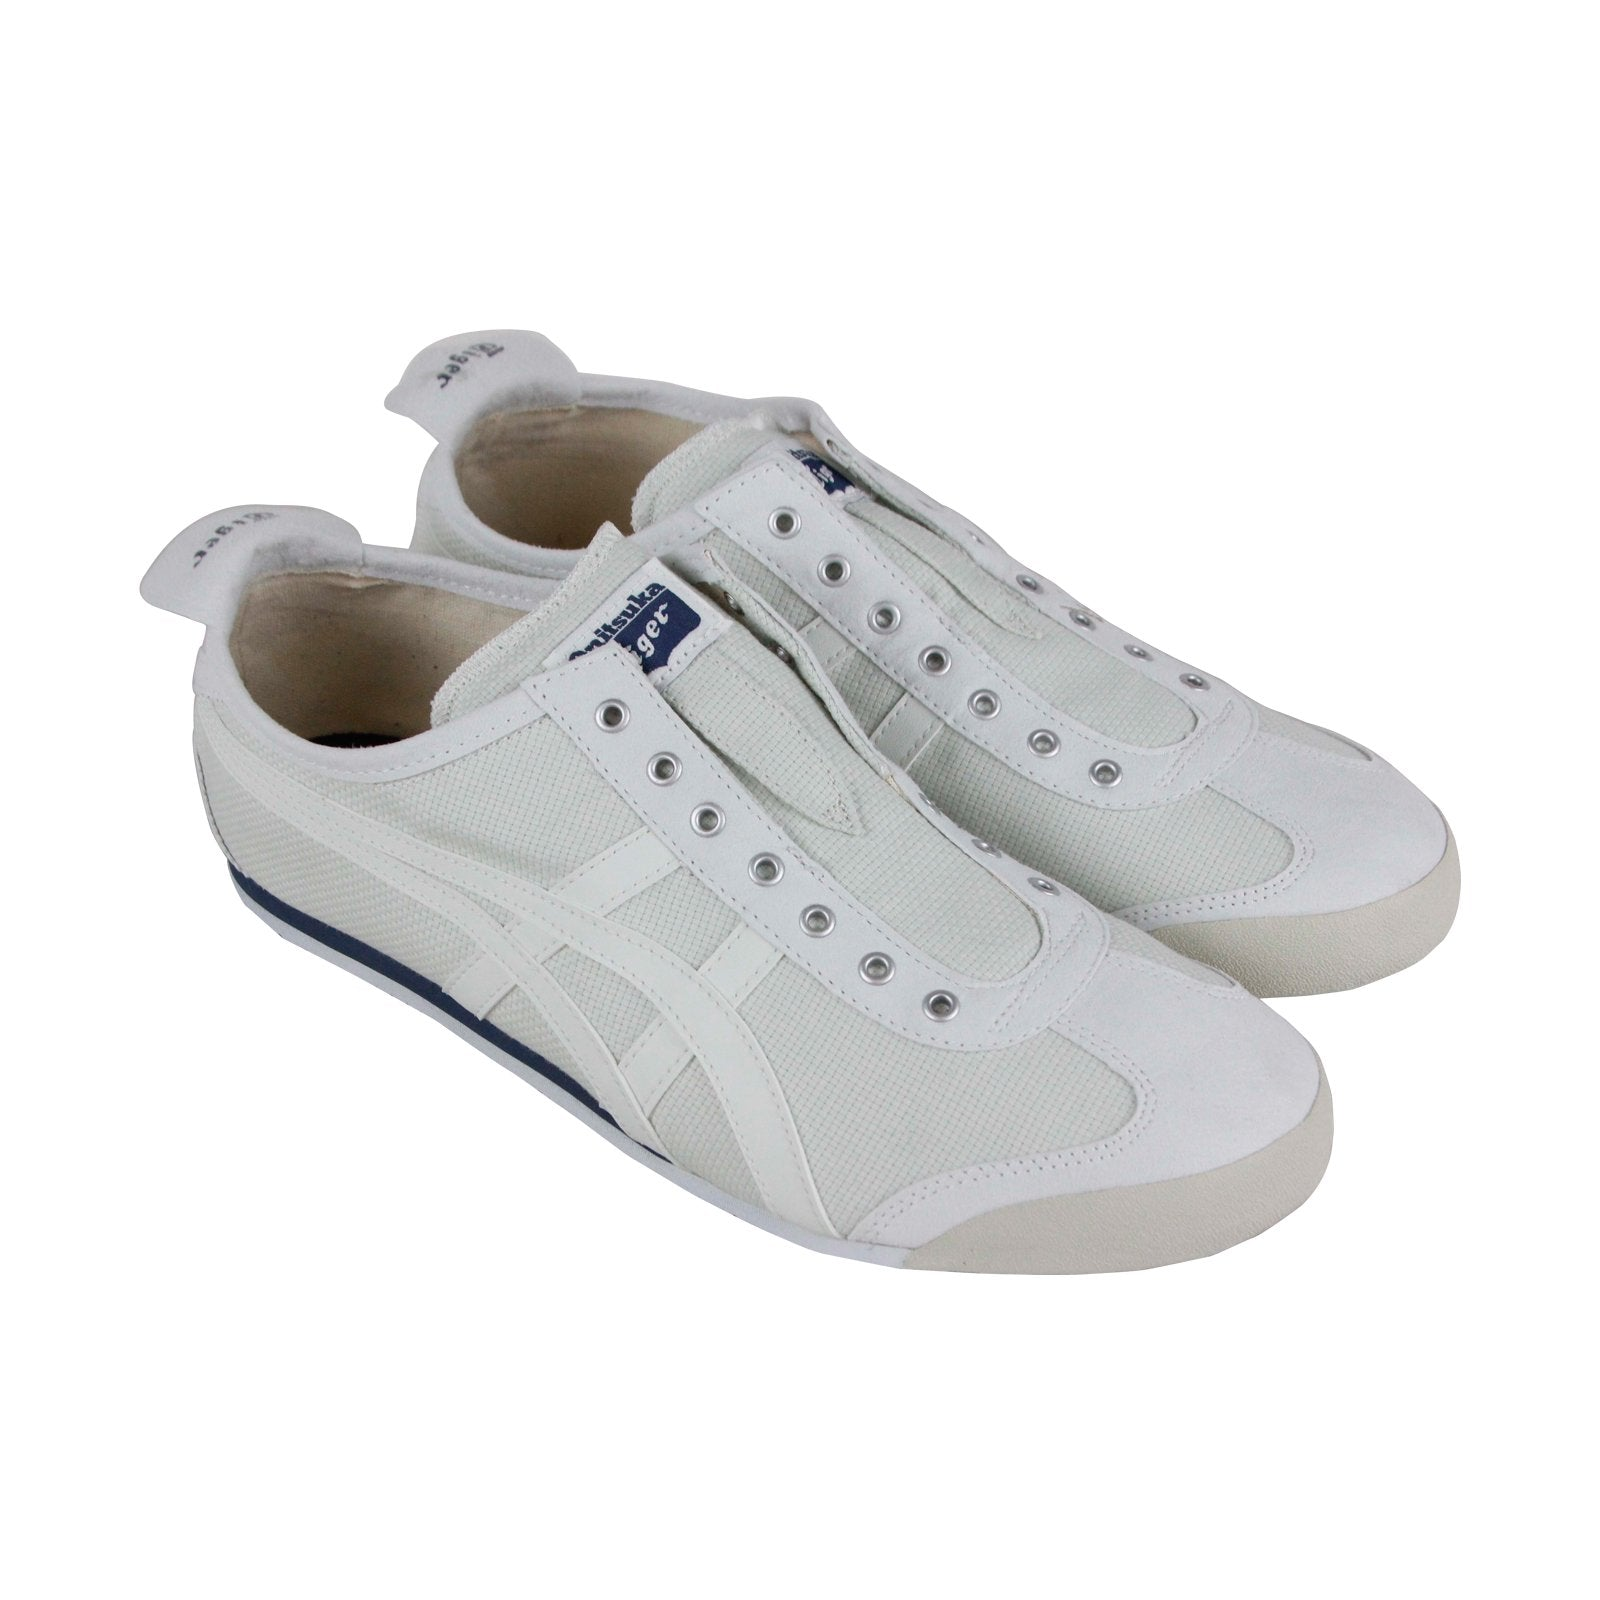 wholesale dealer cf508 94bac Onitsuka Tiger Mexico 66 Slip On Mens Gray Canvas Slip On Sneakers Shoes